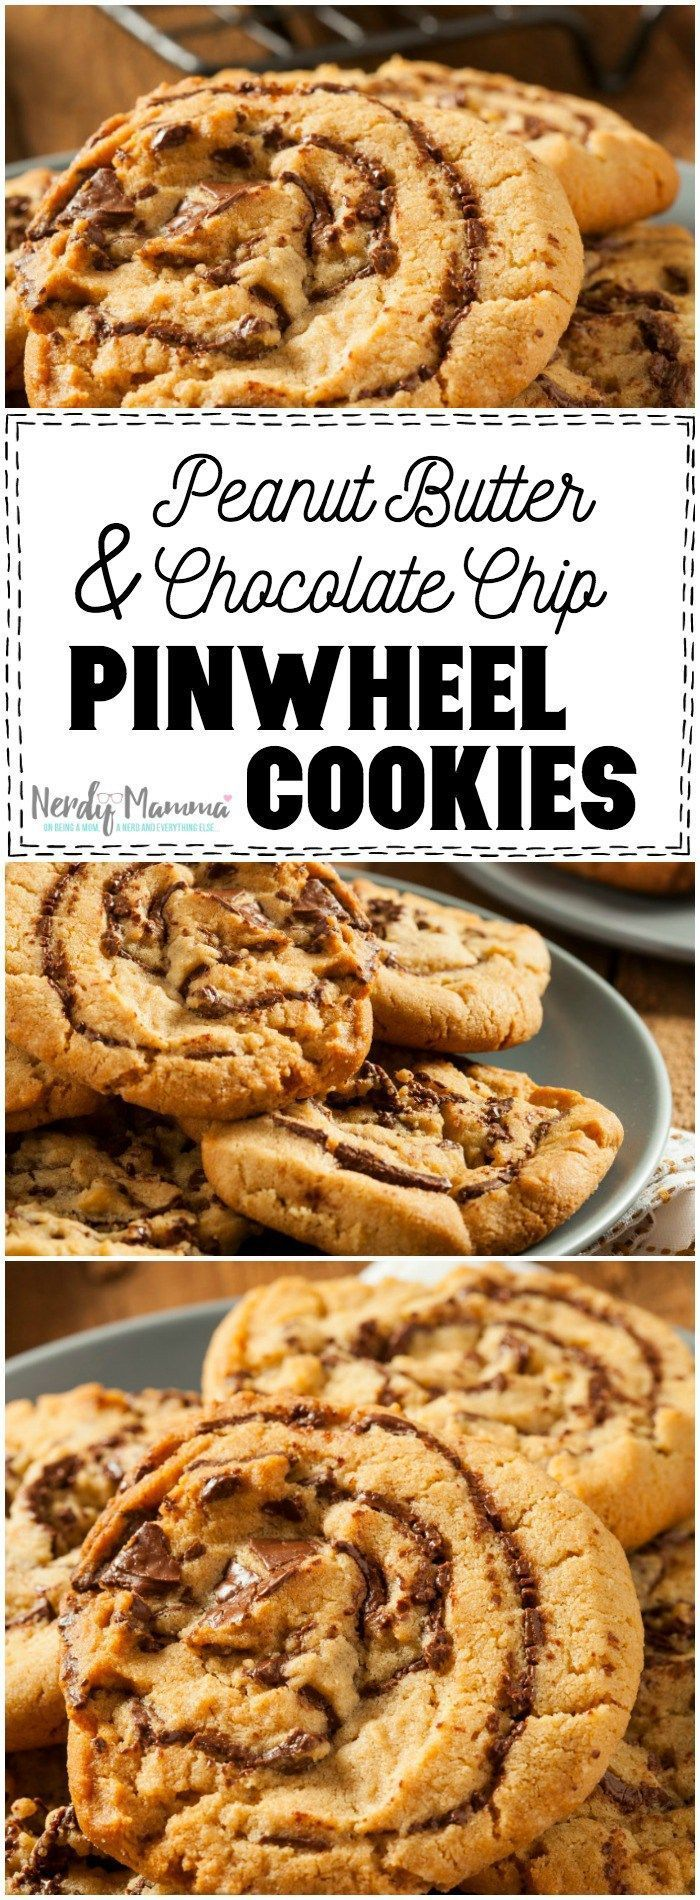 OMG. This recipe for Peanut Butter & Chocolate Chip Pinwheel Cookies! I'm in…